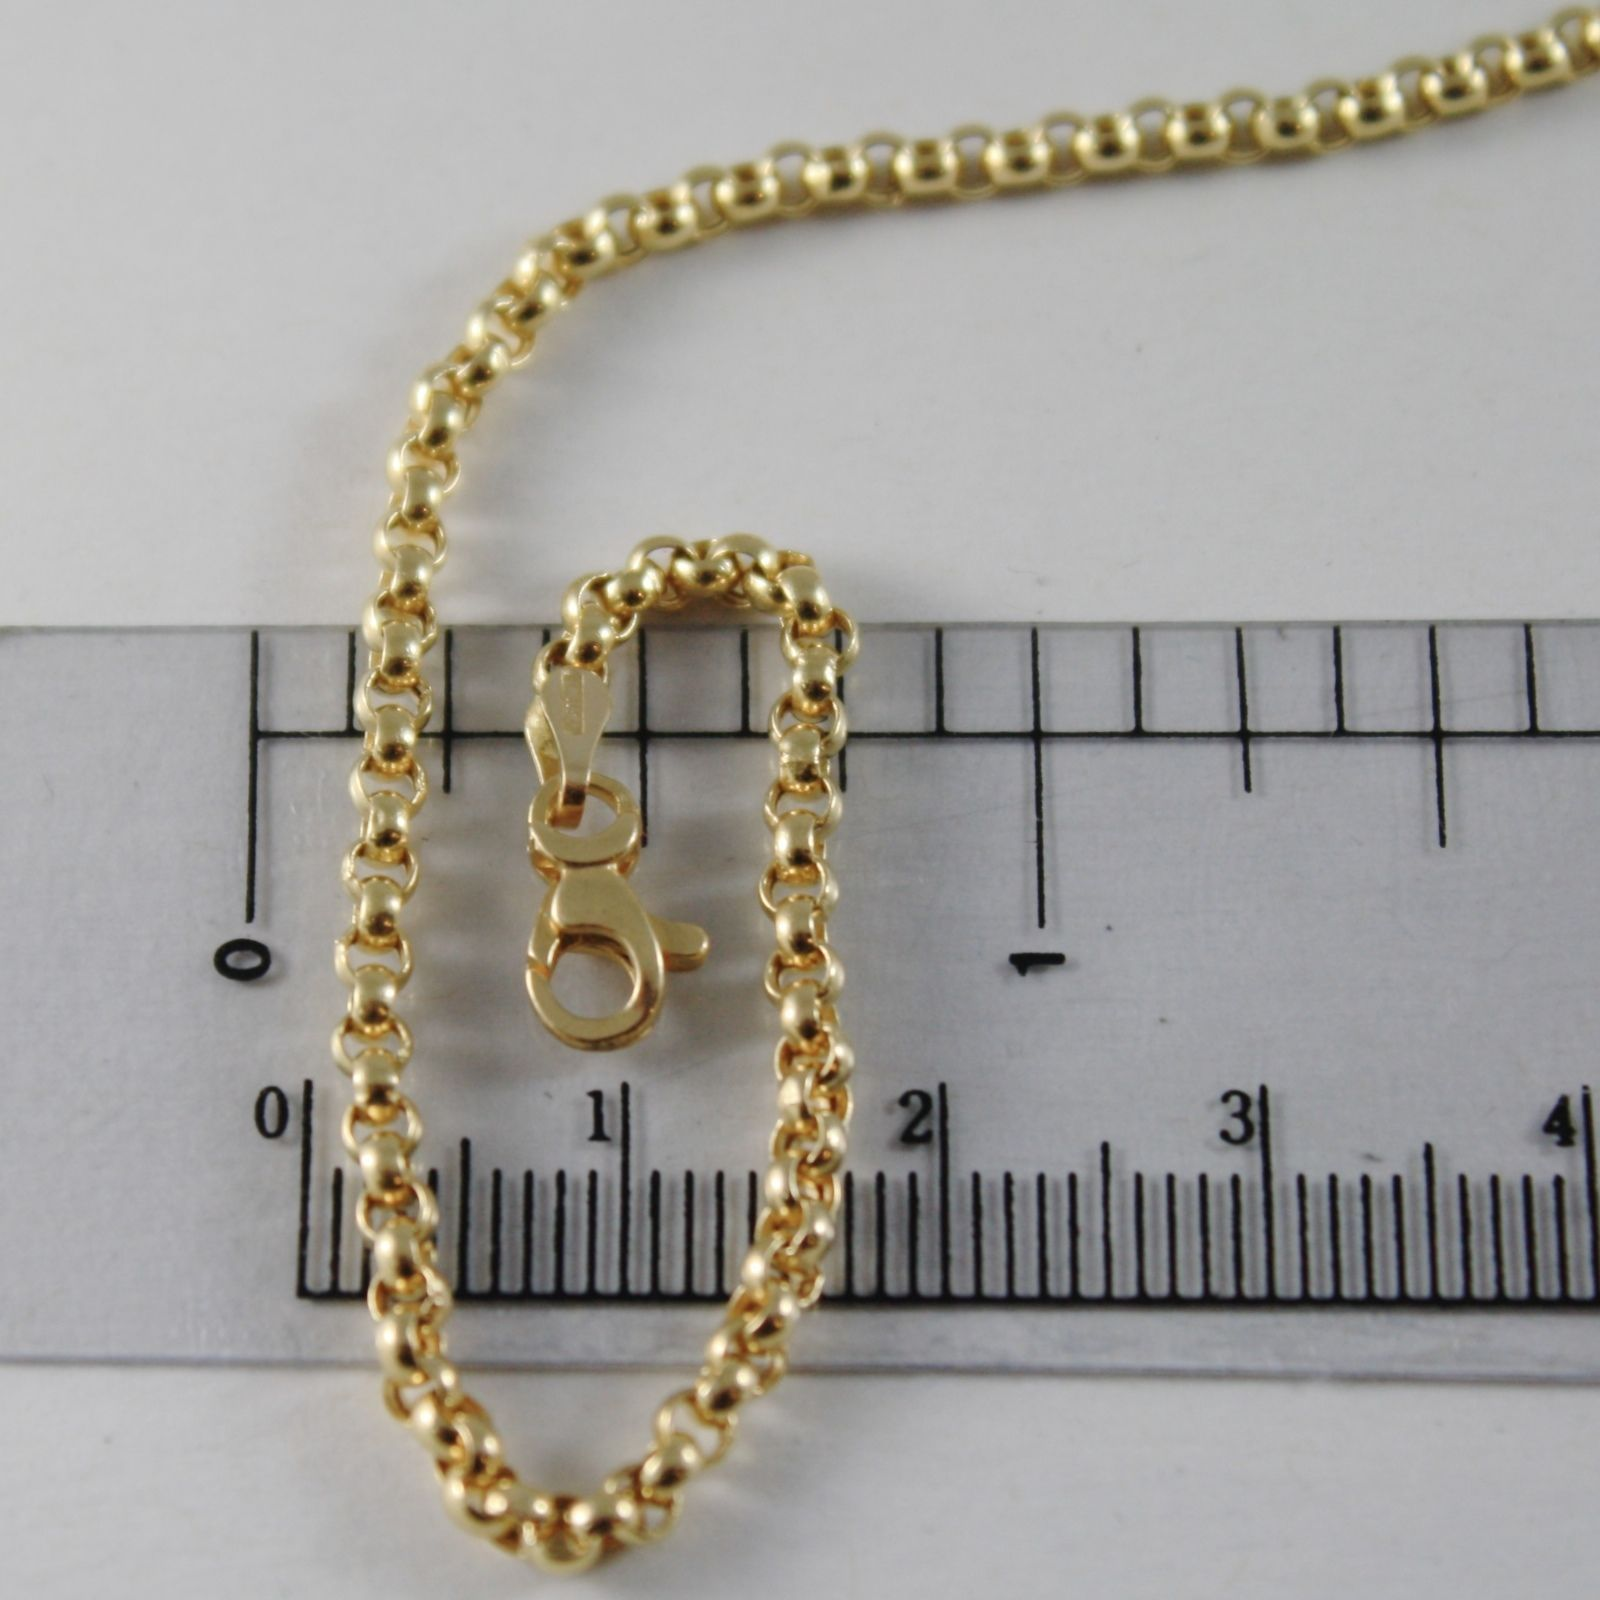 18K YELLOW GOLD CHAIN 15.75 IN DOME ROUND CIRCLE ROLO LINK, 2.5 MM MADE IN ITALY